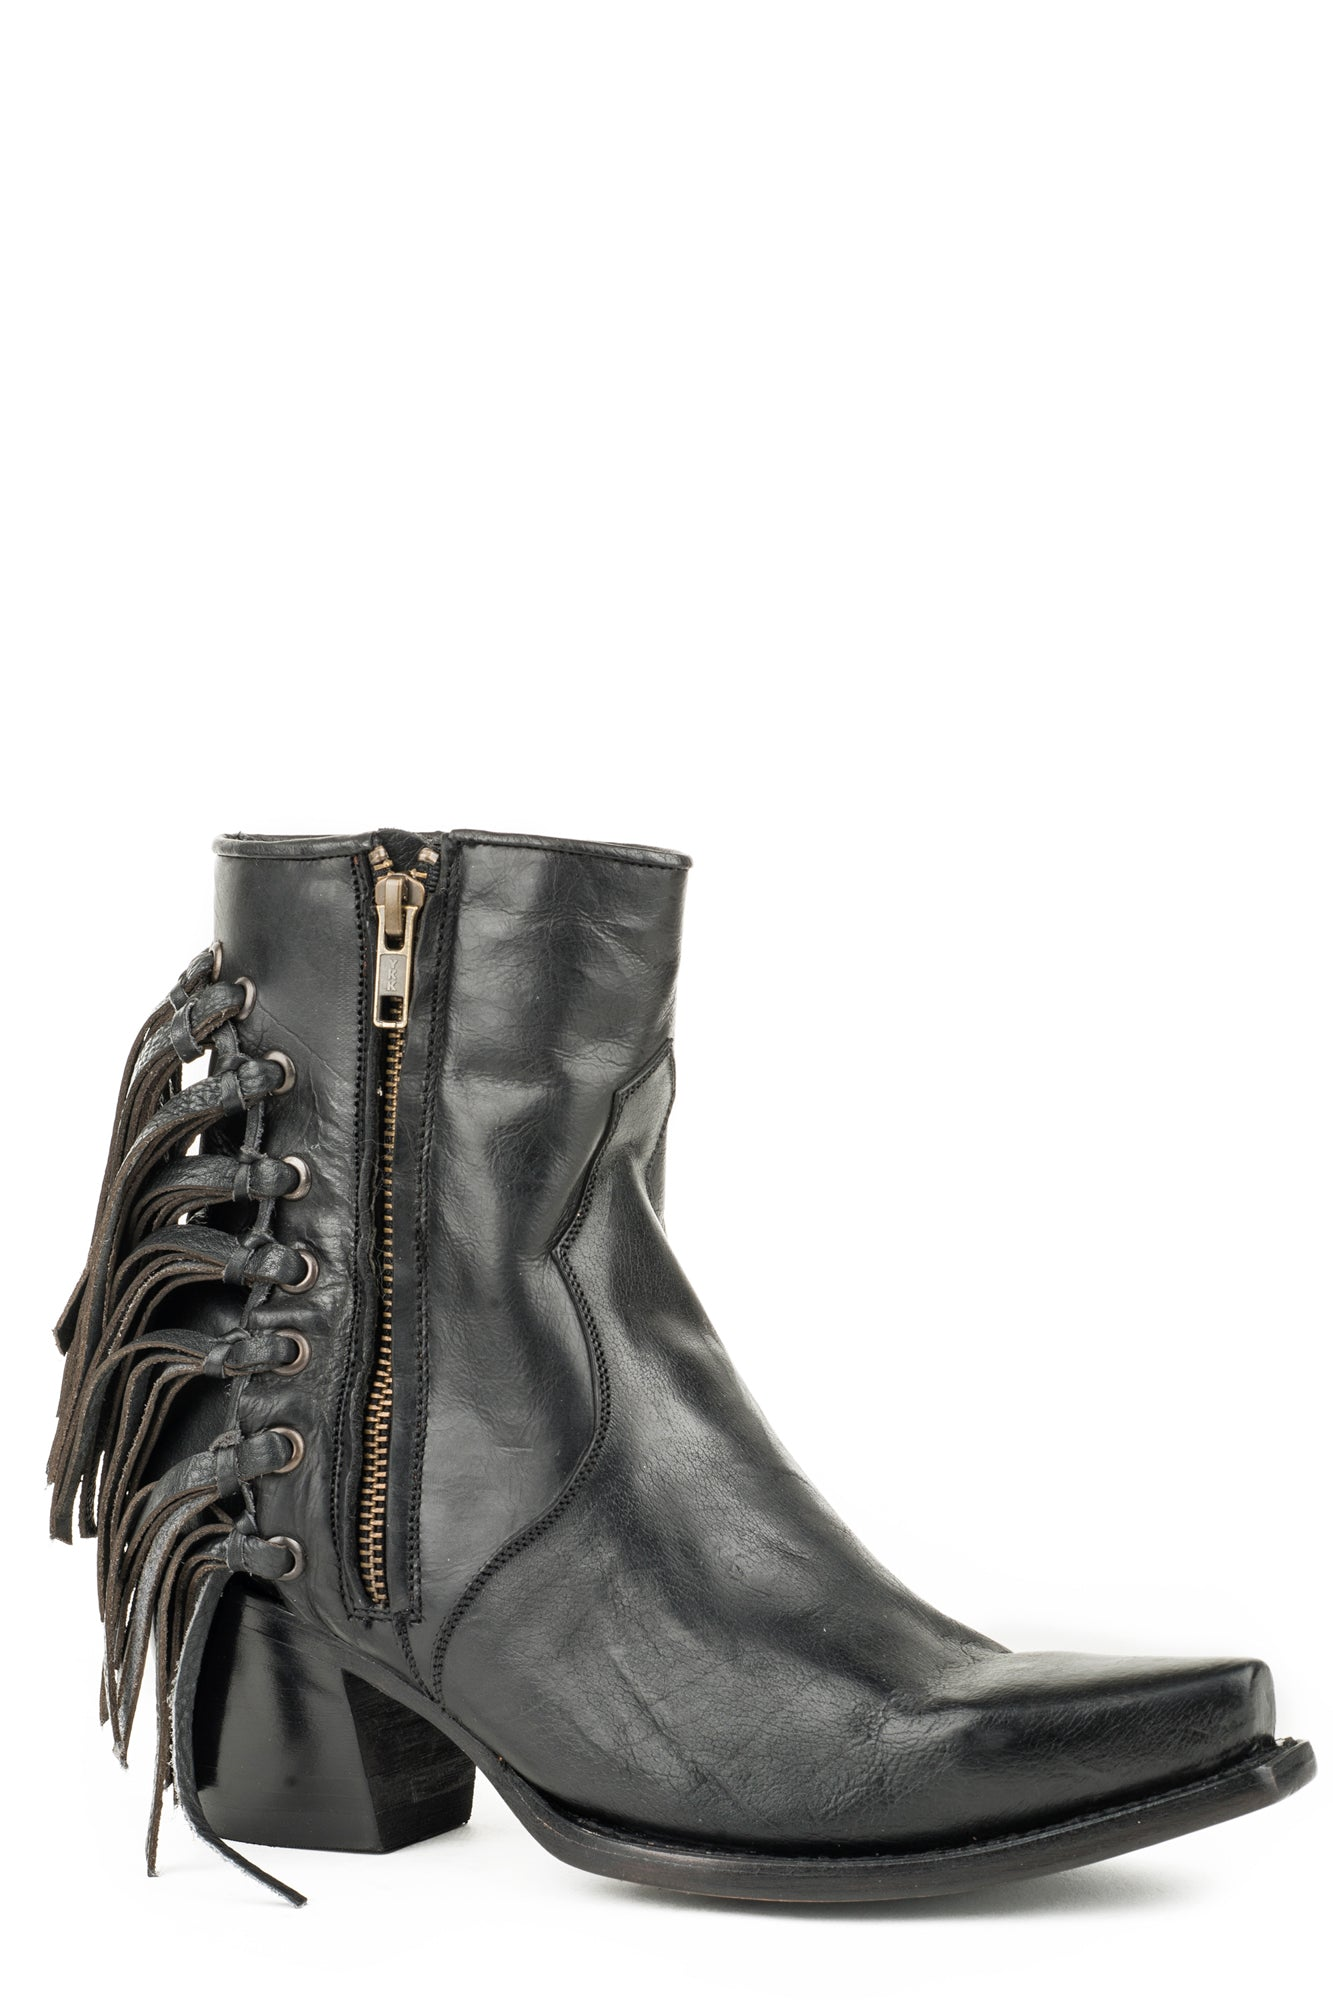 Leather Evie Ankle Boots